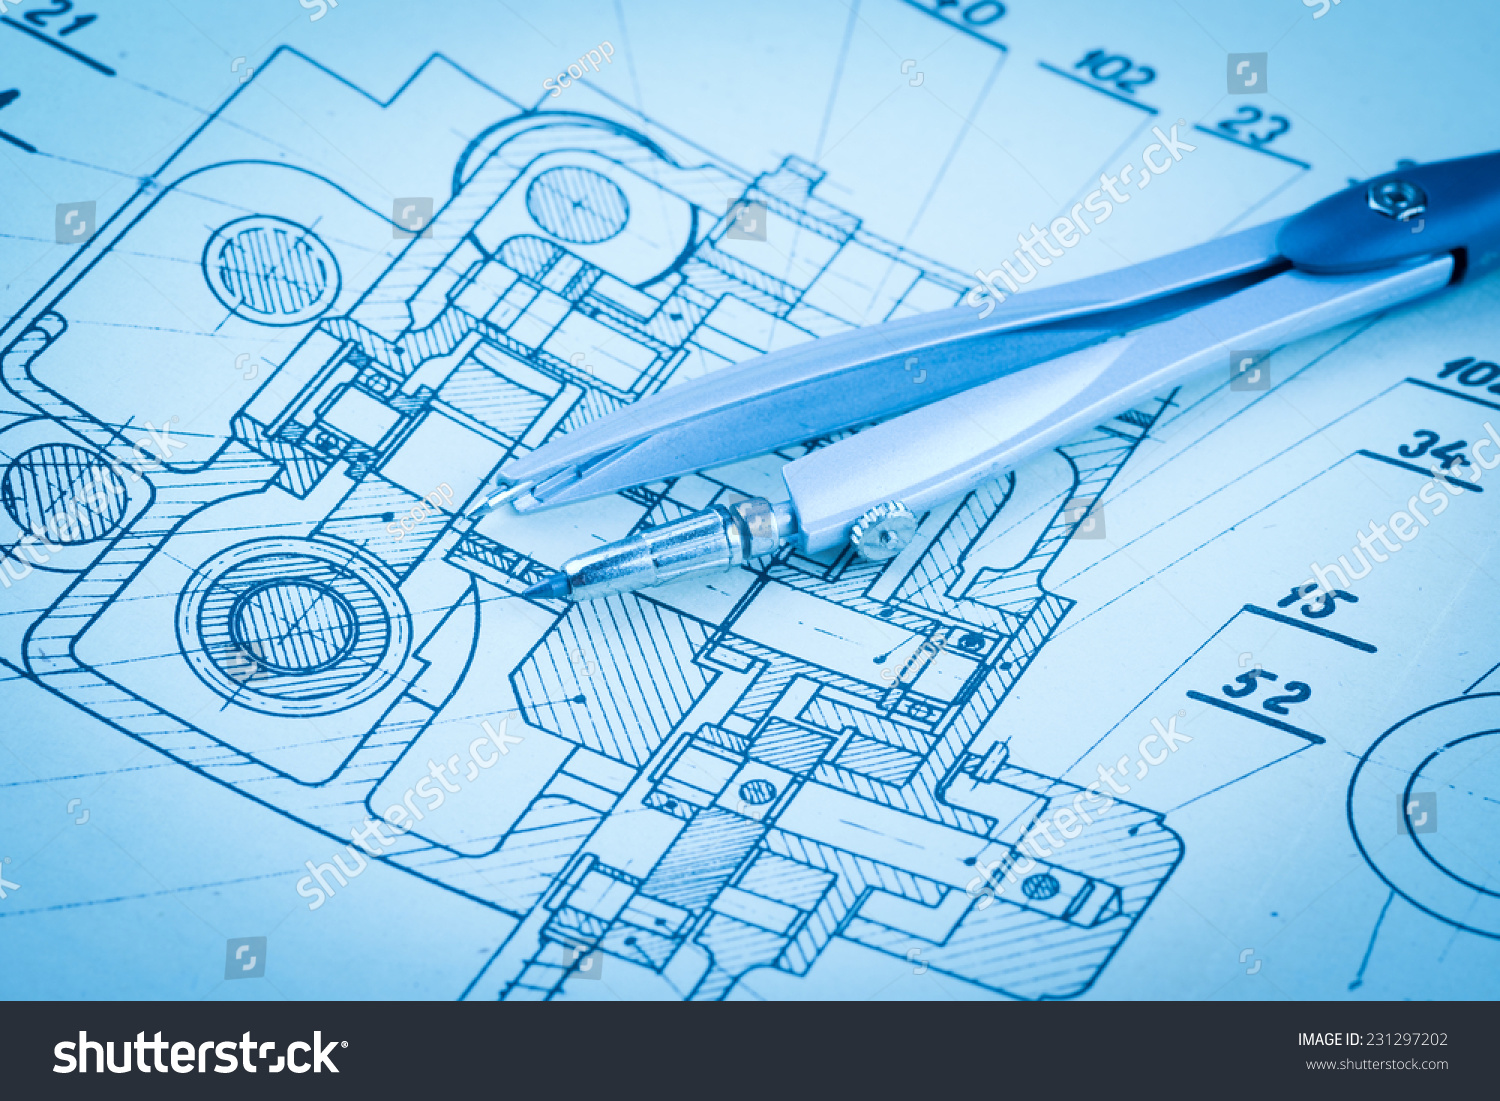 Industrial Drawing Detail Several Drawing Tools Stock Photo (Royalty ...